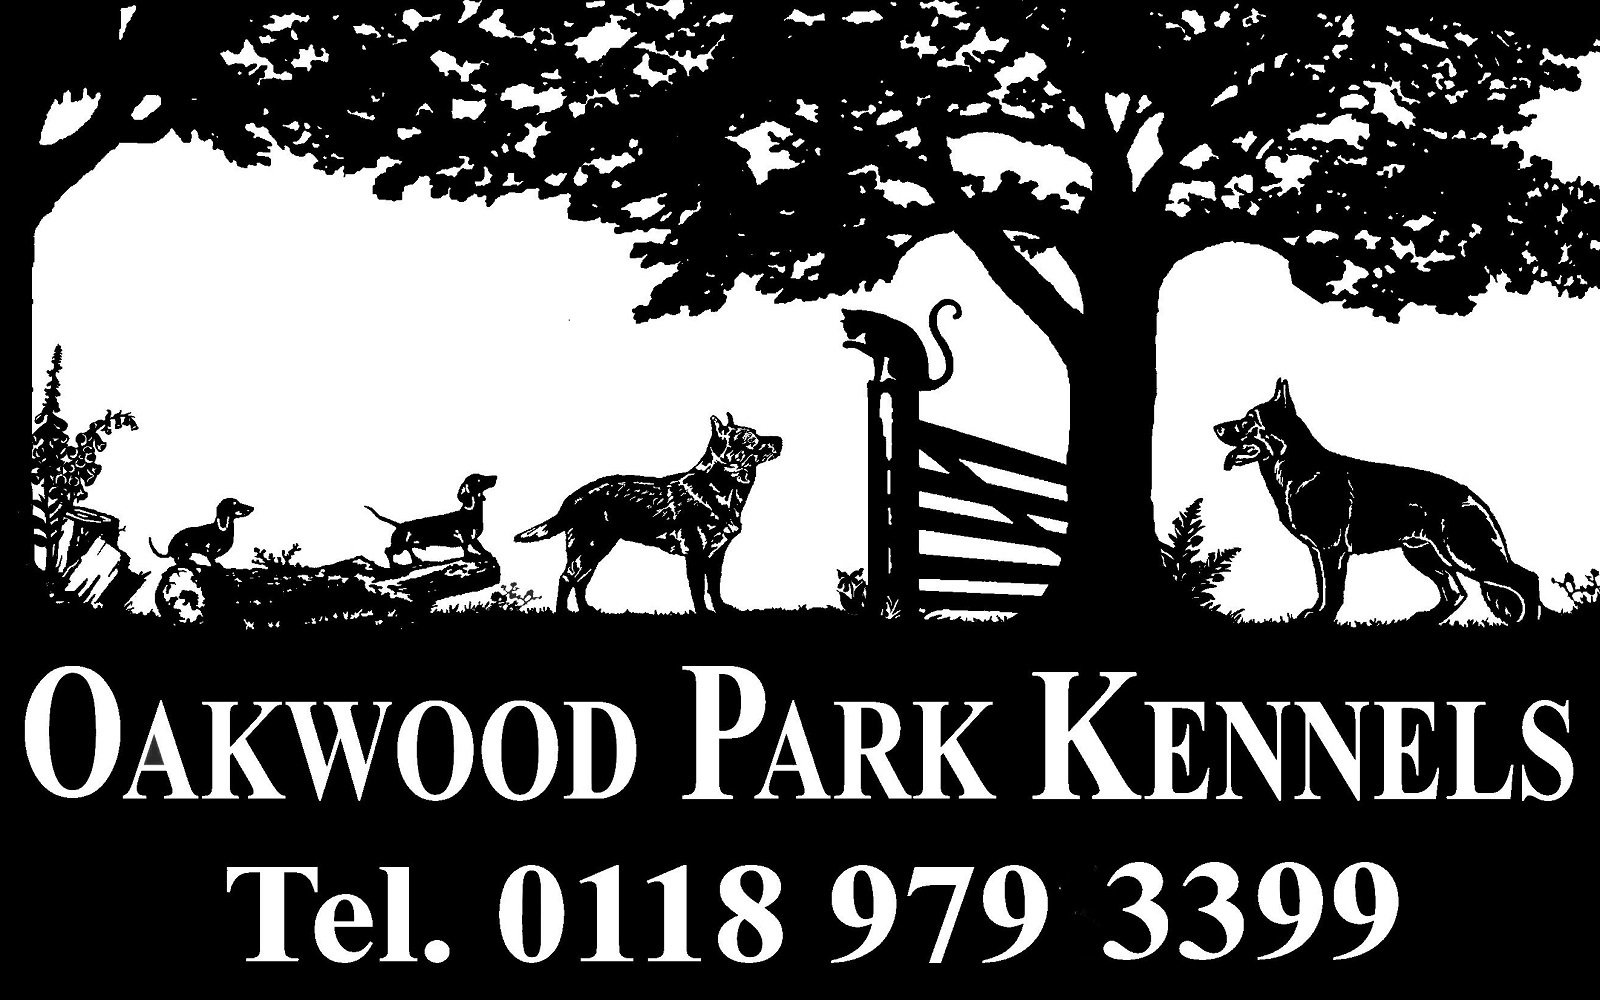 Oakwood Park Kennels logo